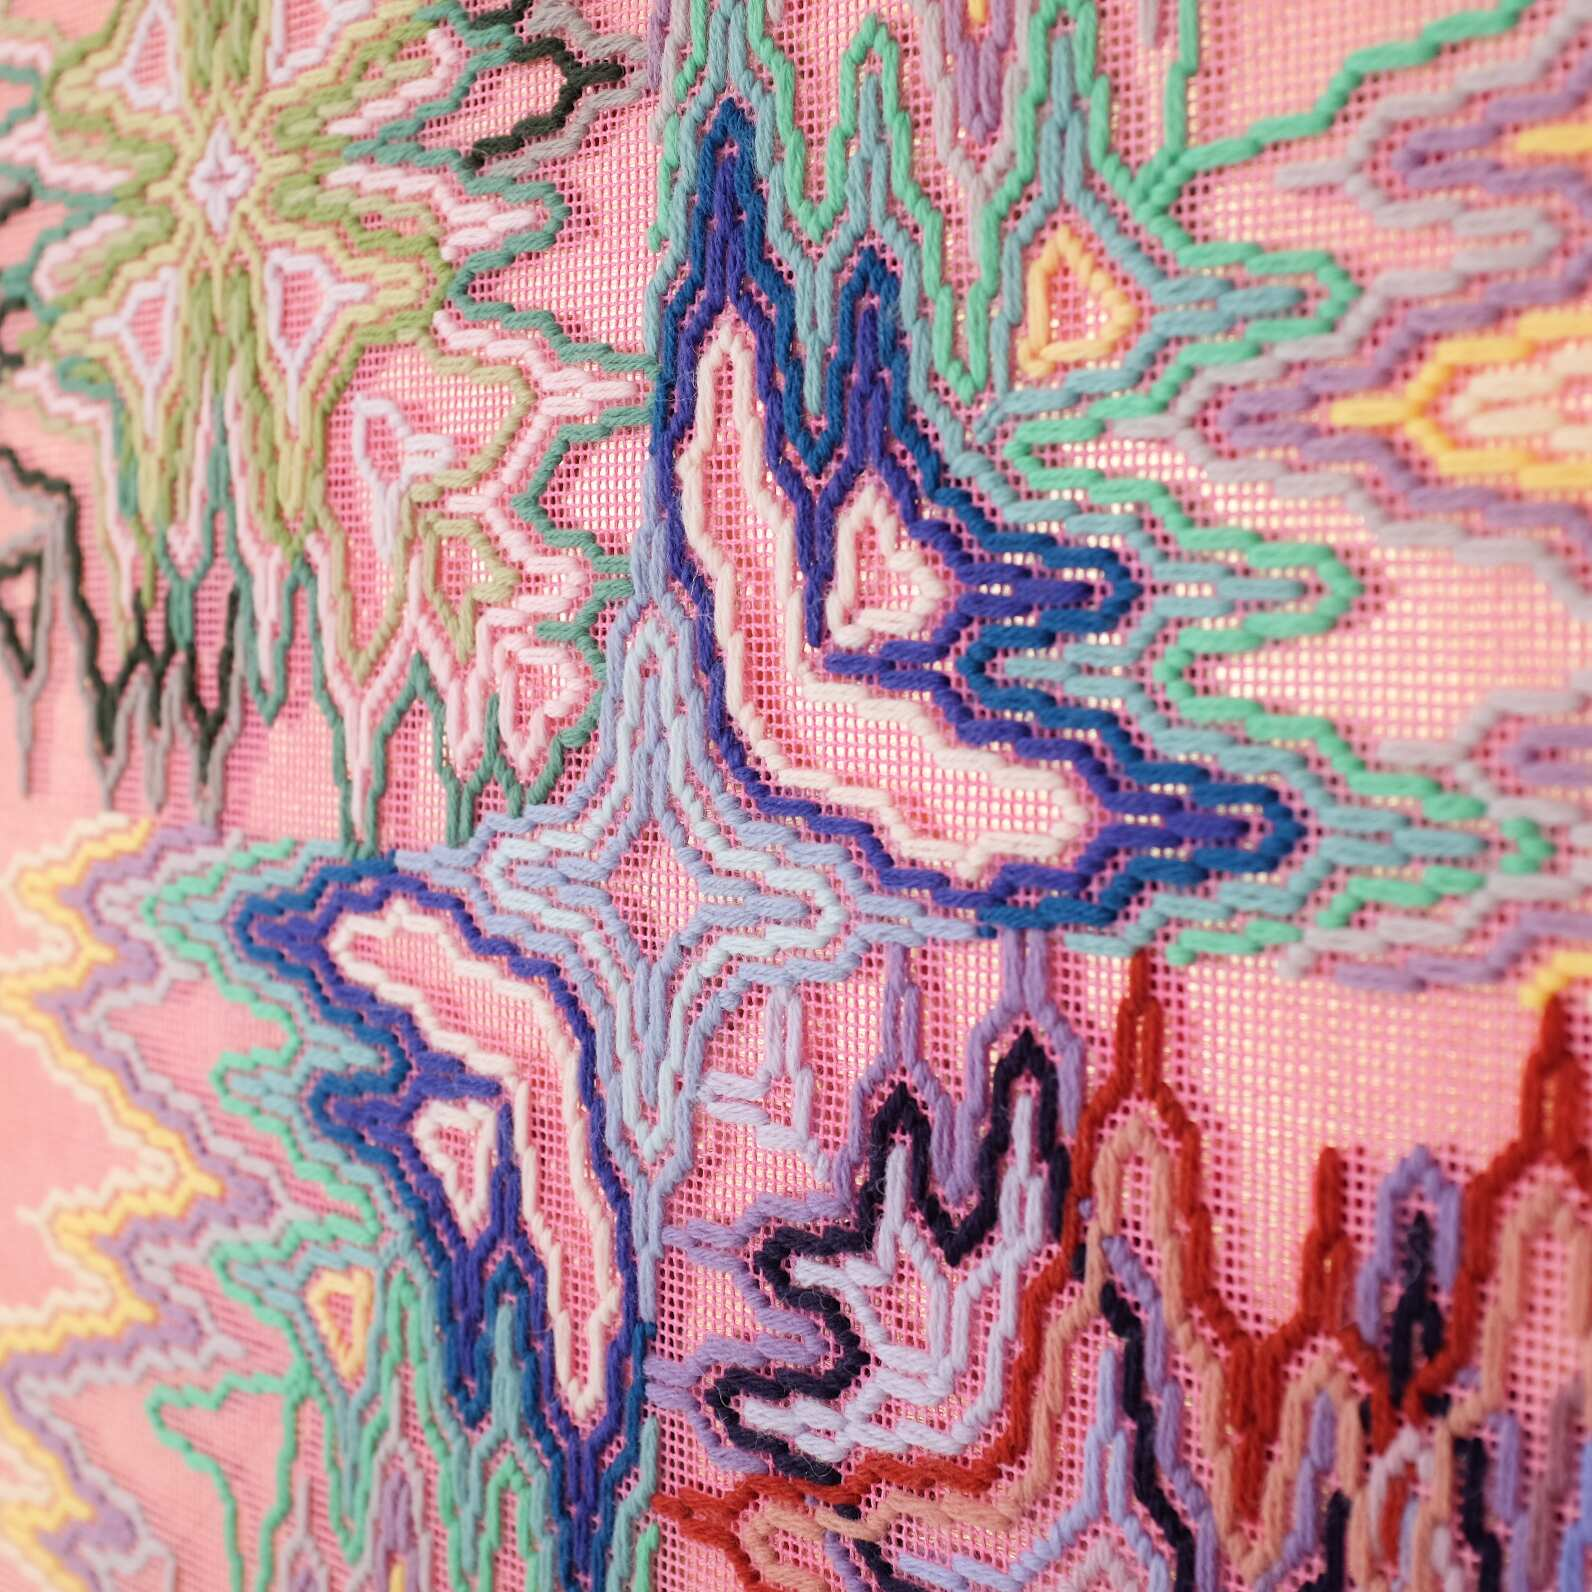 A big bang (nature's synchronicity), Hand-embroidered wool yarn and acrylic paint on canvas over gilded panel, 2021